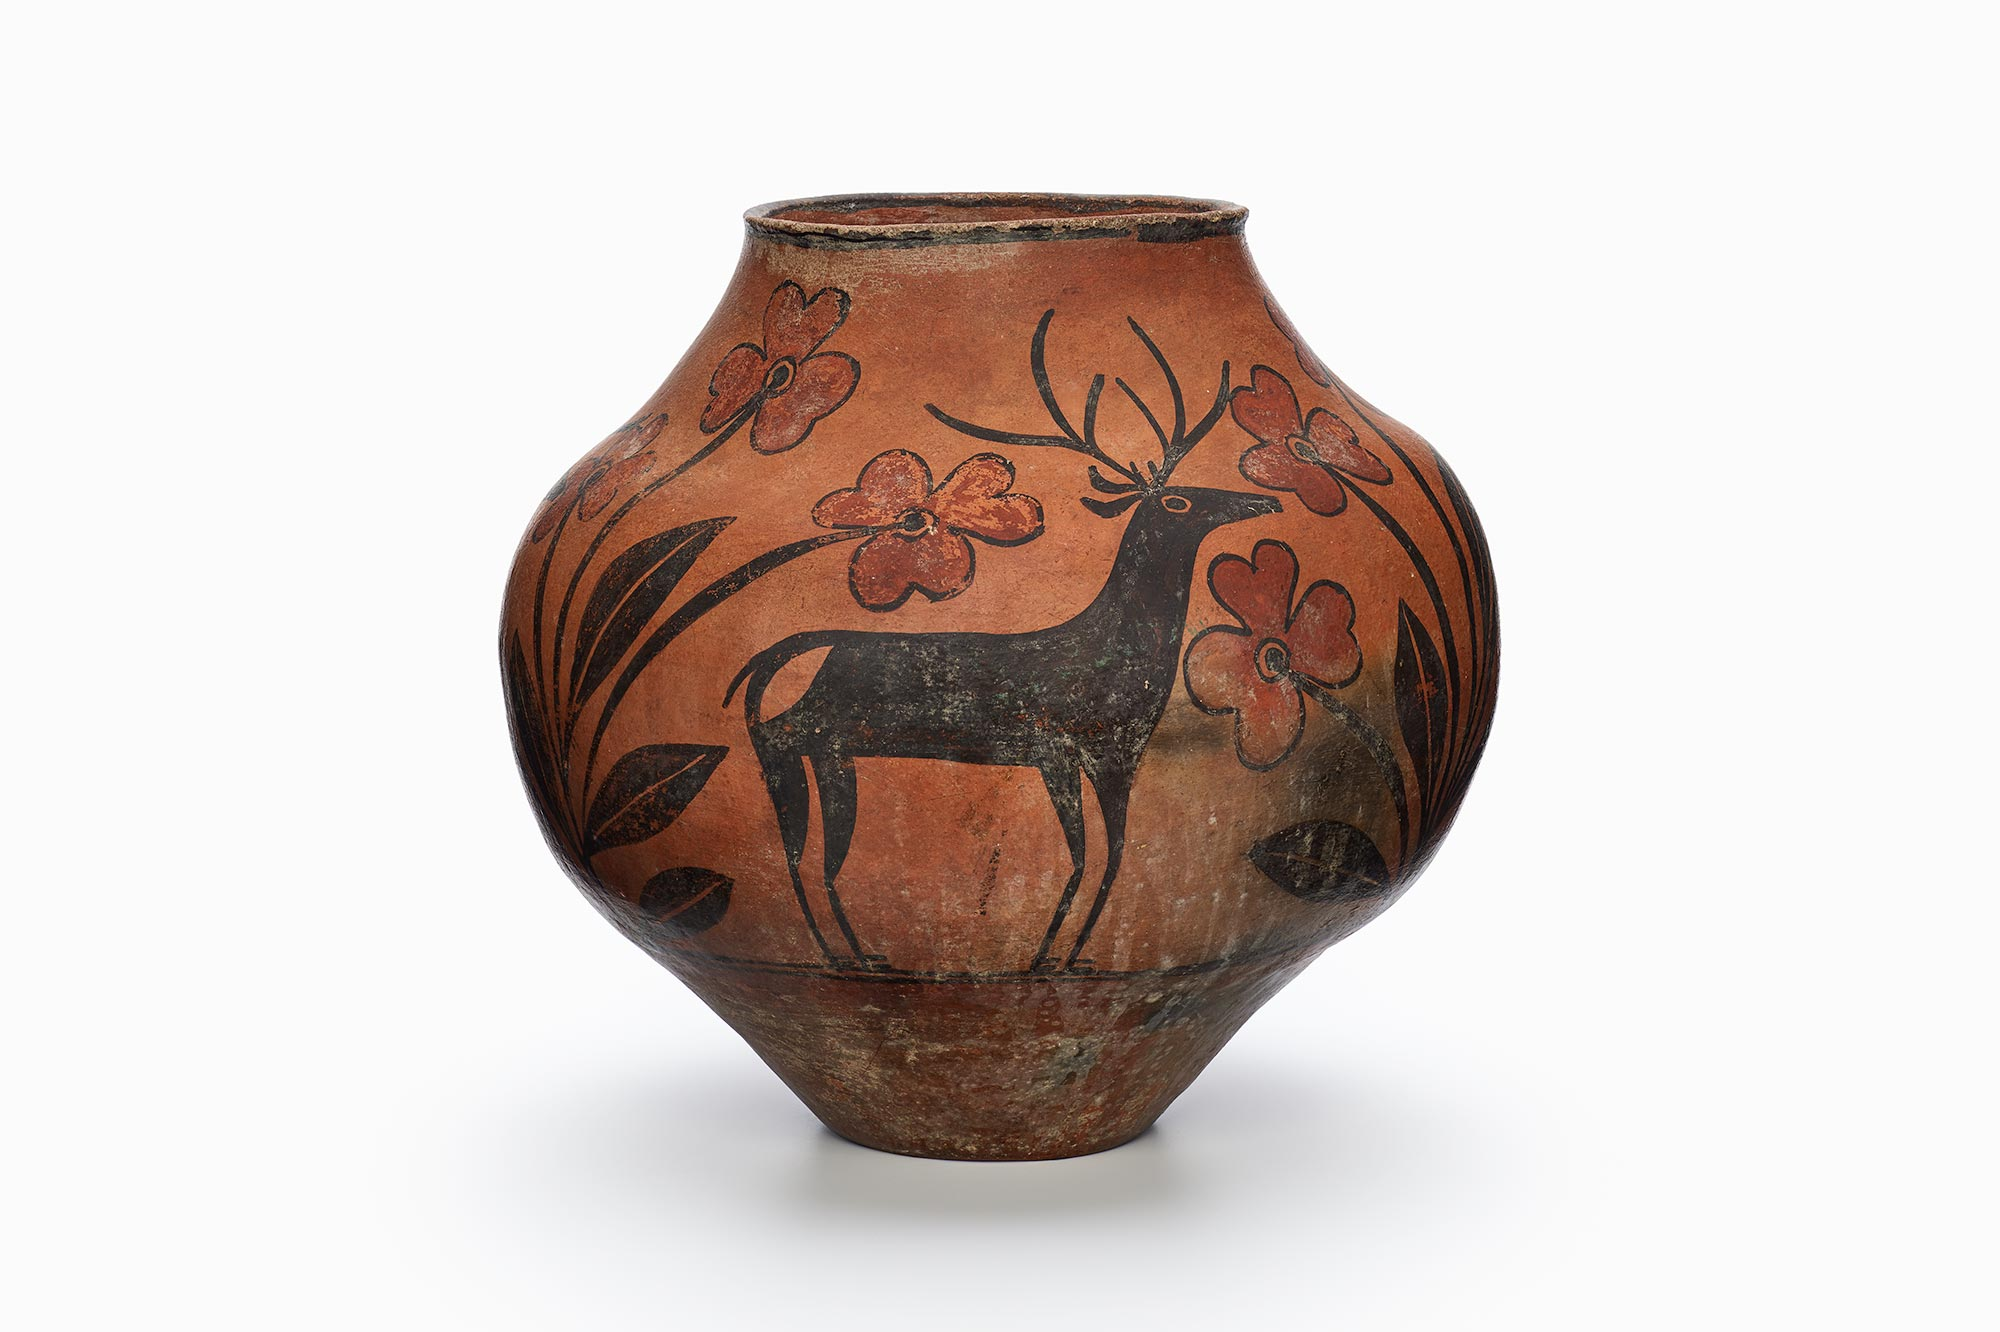 A Zia pot with a rarely-painted deer in the center surrounded by black and brown patterns.